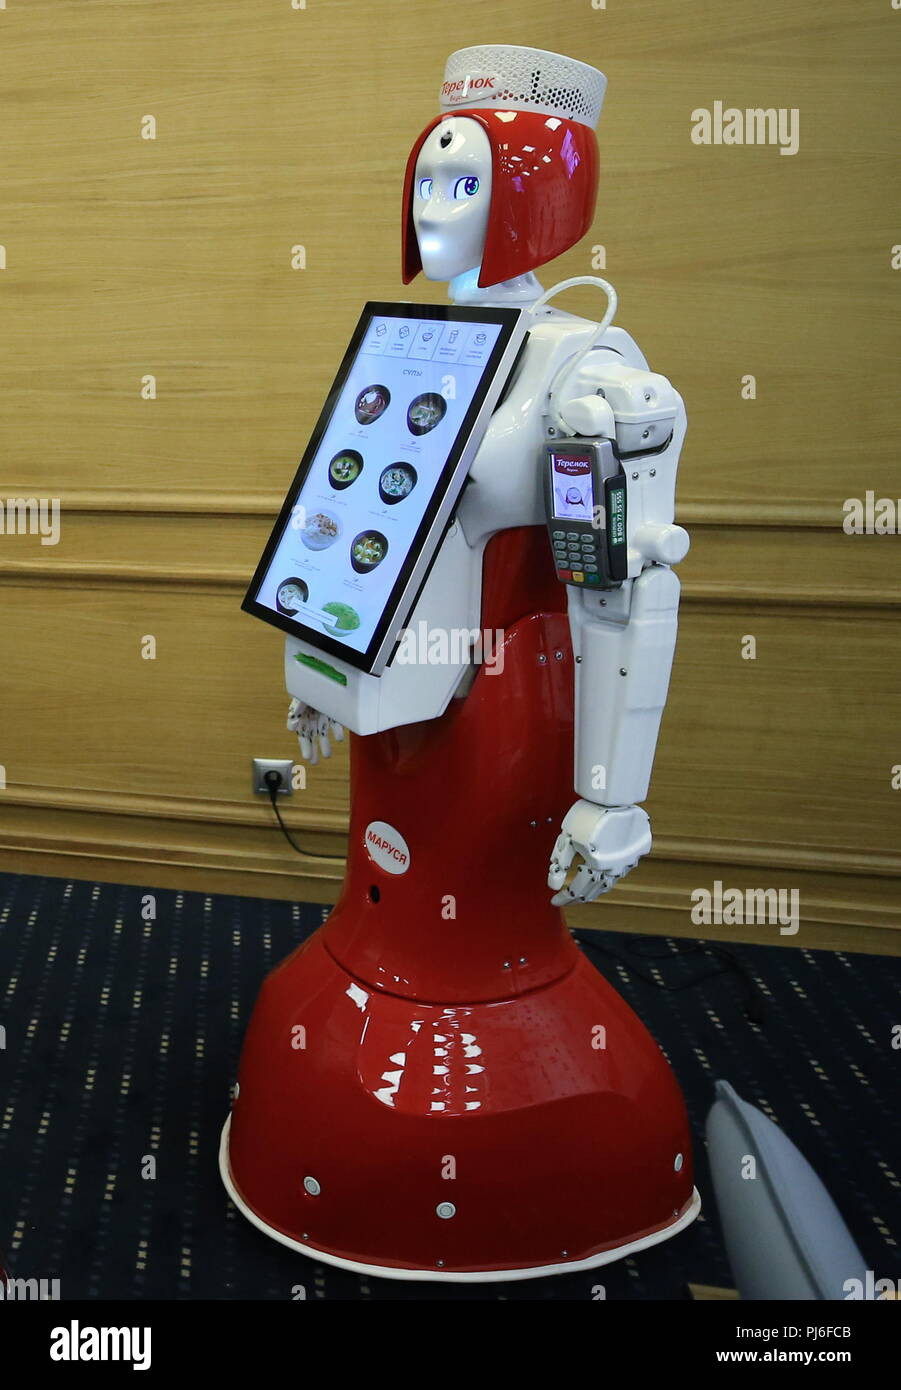 St Petersburg, Russia. 05th Sep, 2018. ST PETERSBURG, RUSSIA - SEPTEMBER 5, 2018: Marusya the robot taking orders and accepting credit cards that will serve at Teremok fast food chain offering Russian cuisine. Peter Kovalev/TASS Credit: ITAR-TASS News Agency/Alamy Live News Stock Photo